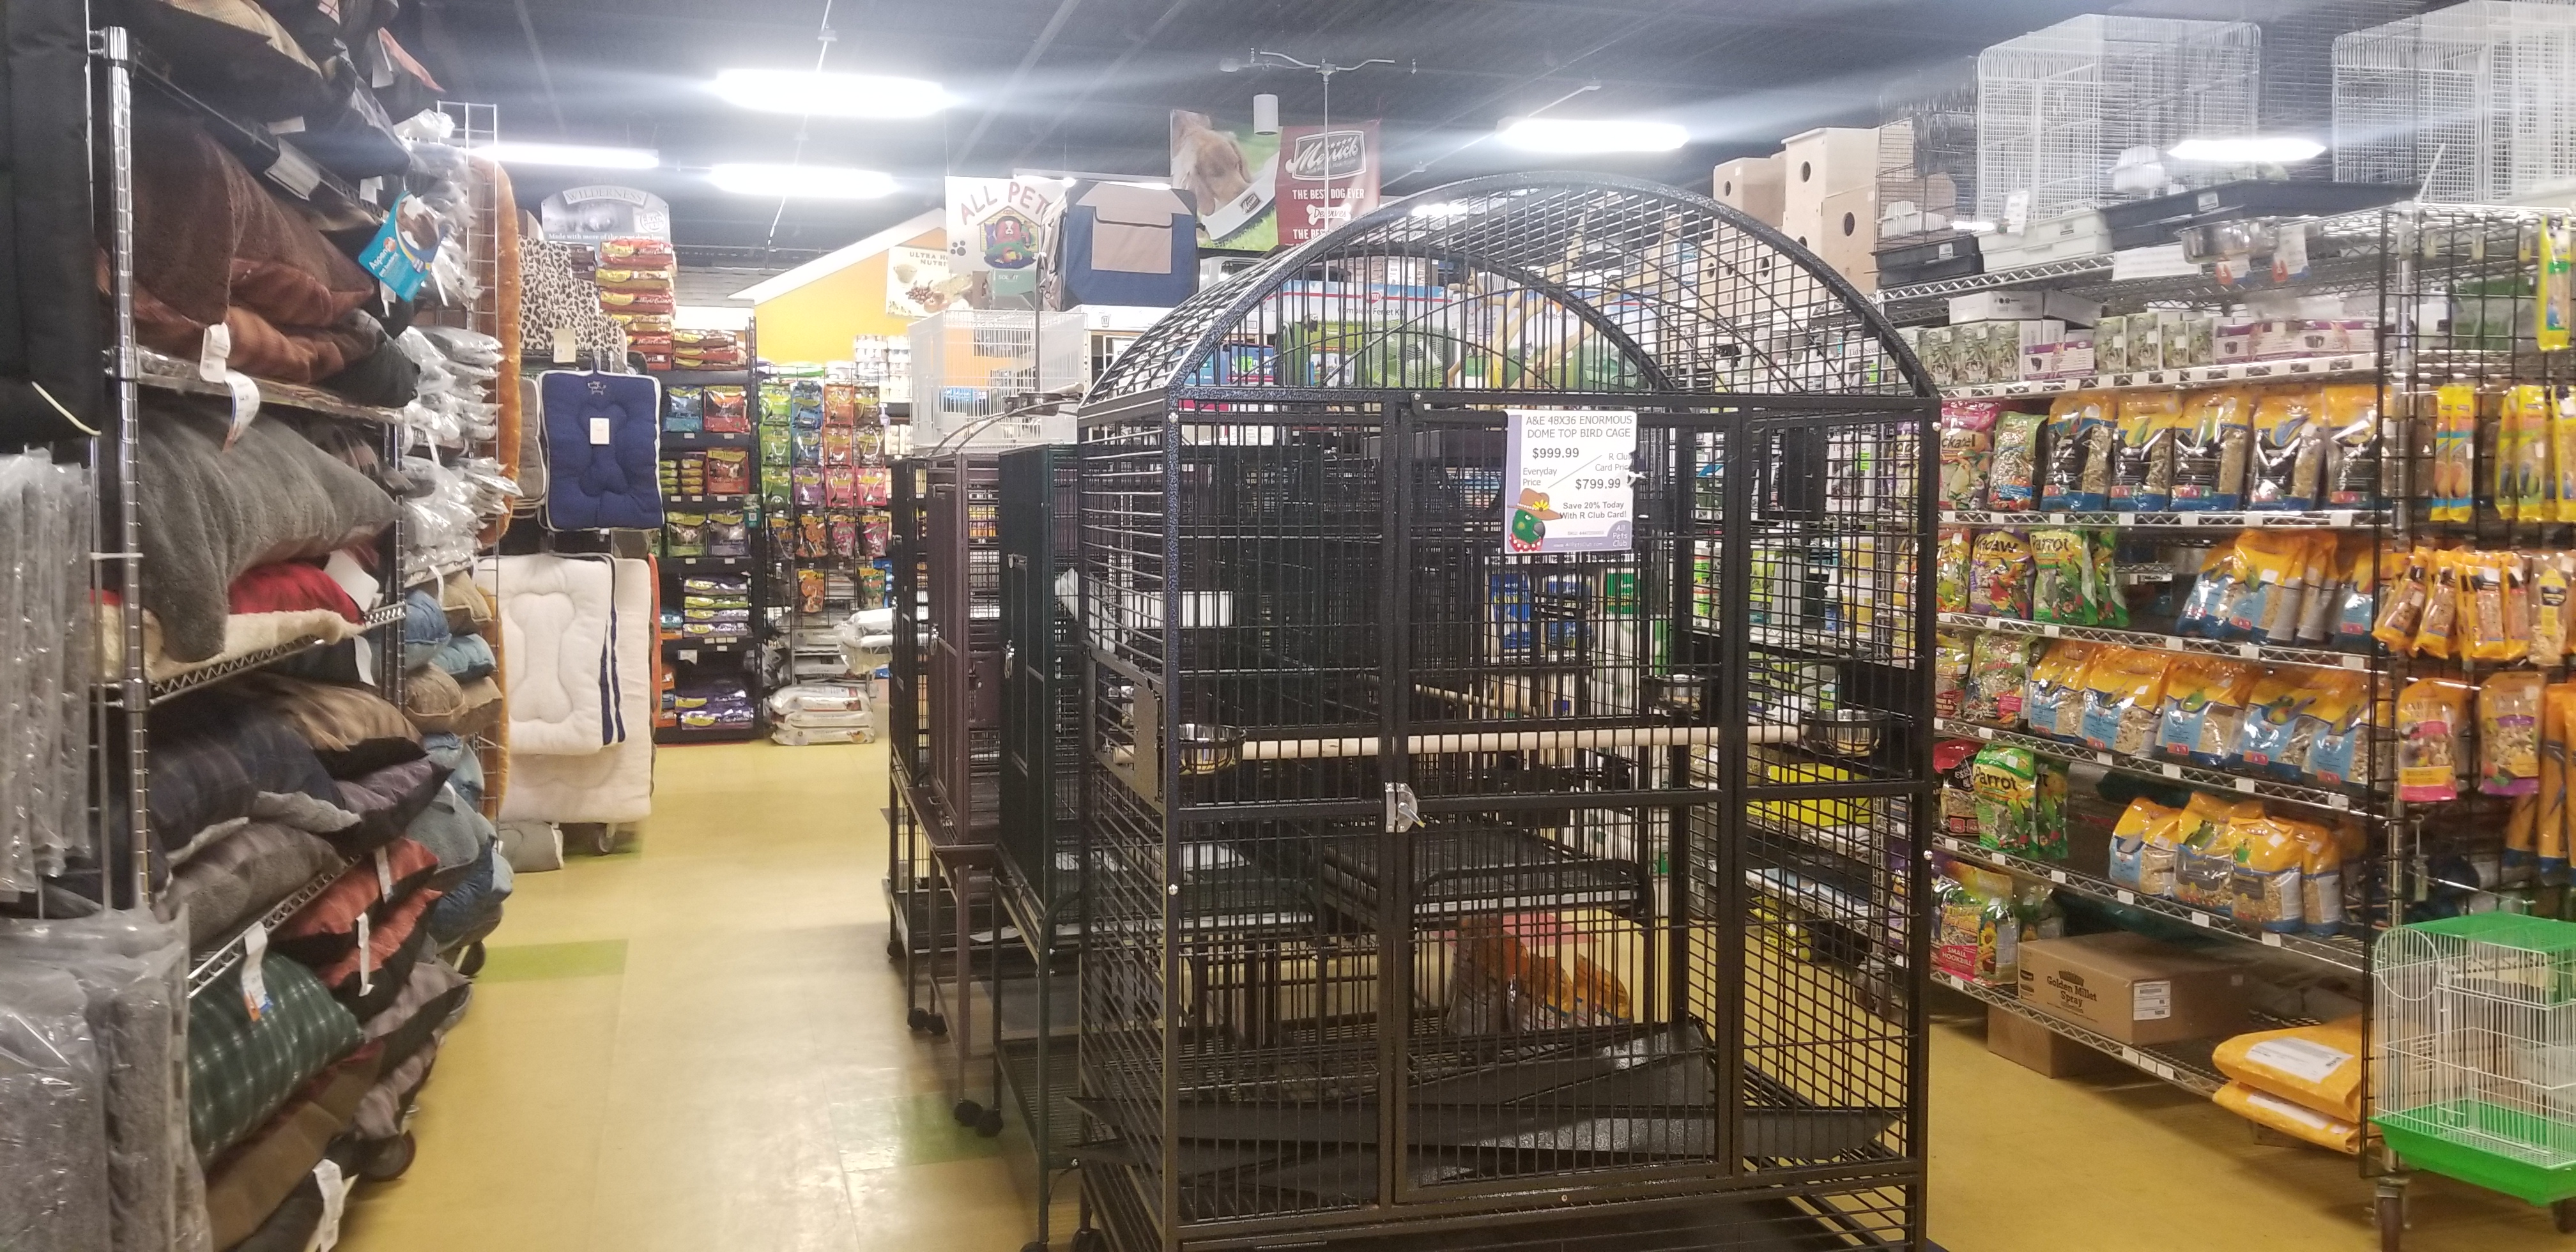 Cages of Every Size